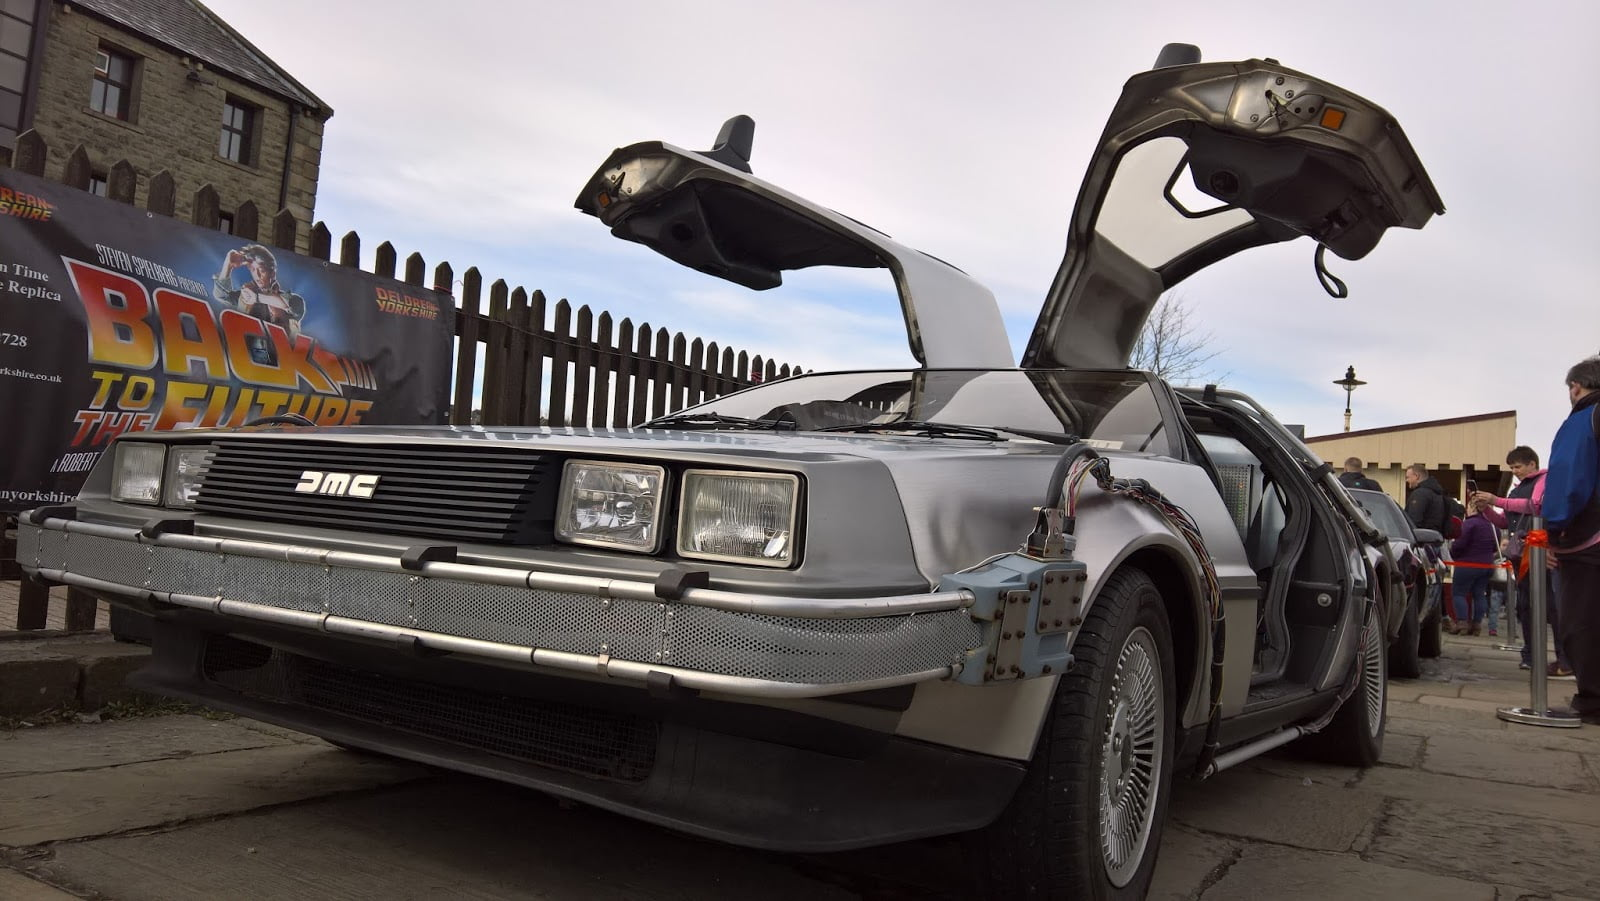 Delorean at the East Lancs Railway